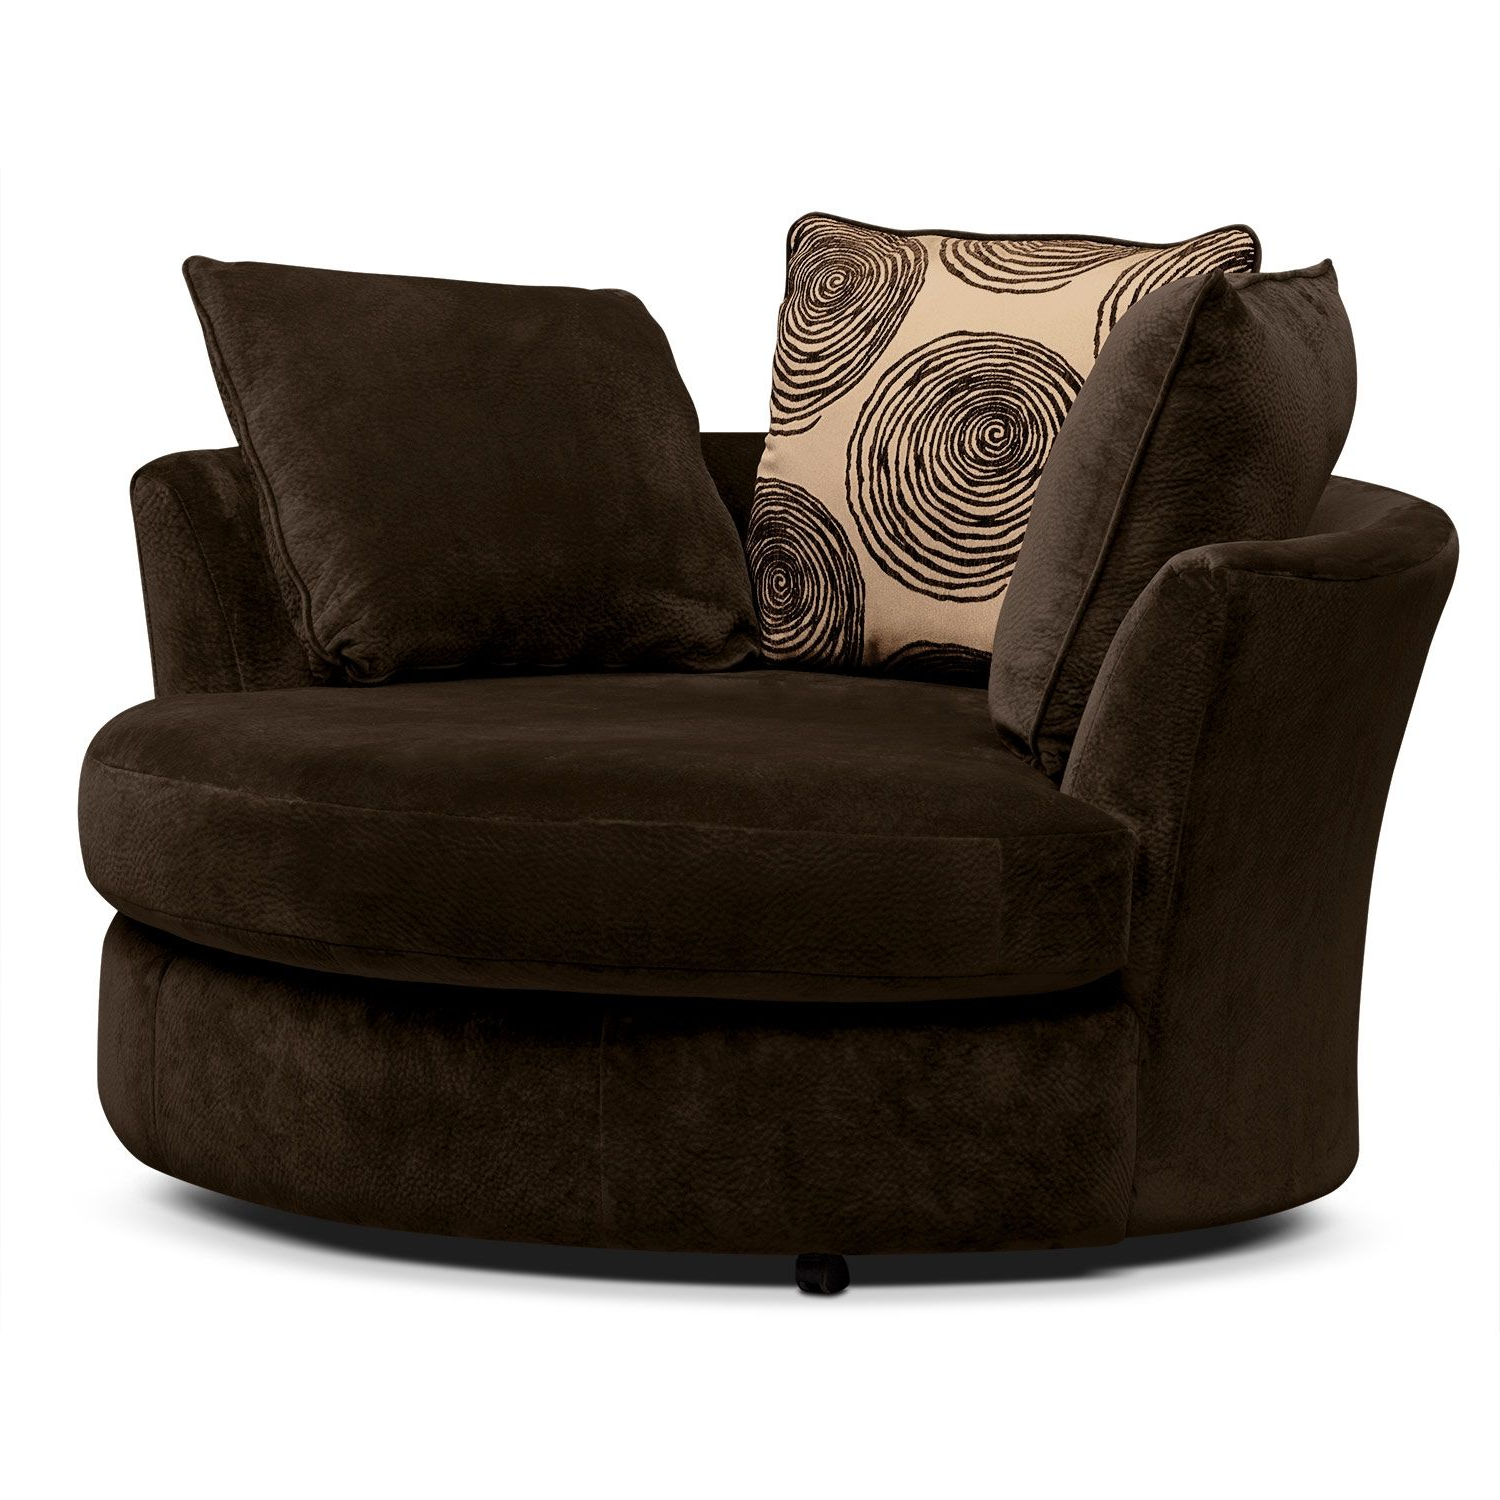 Home Decor With 2019 Chocolate Brown Leather Tufted Swivel Chairs (Gallery 20 of 20)